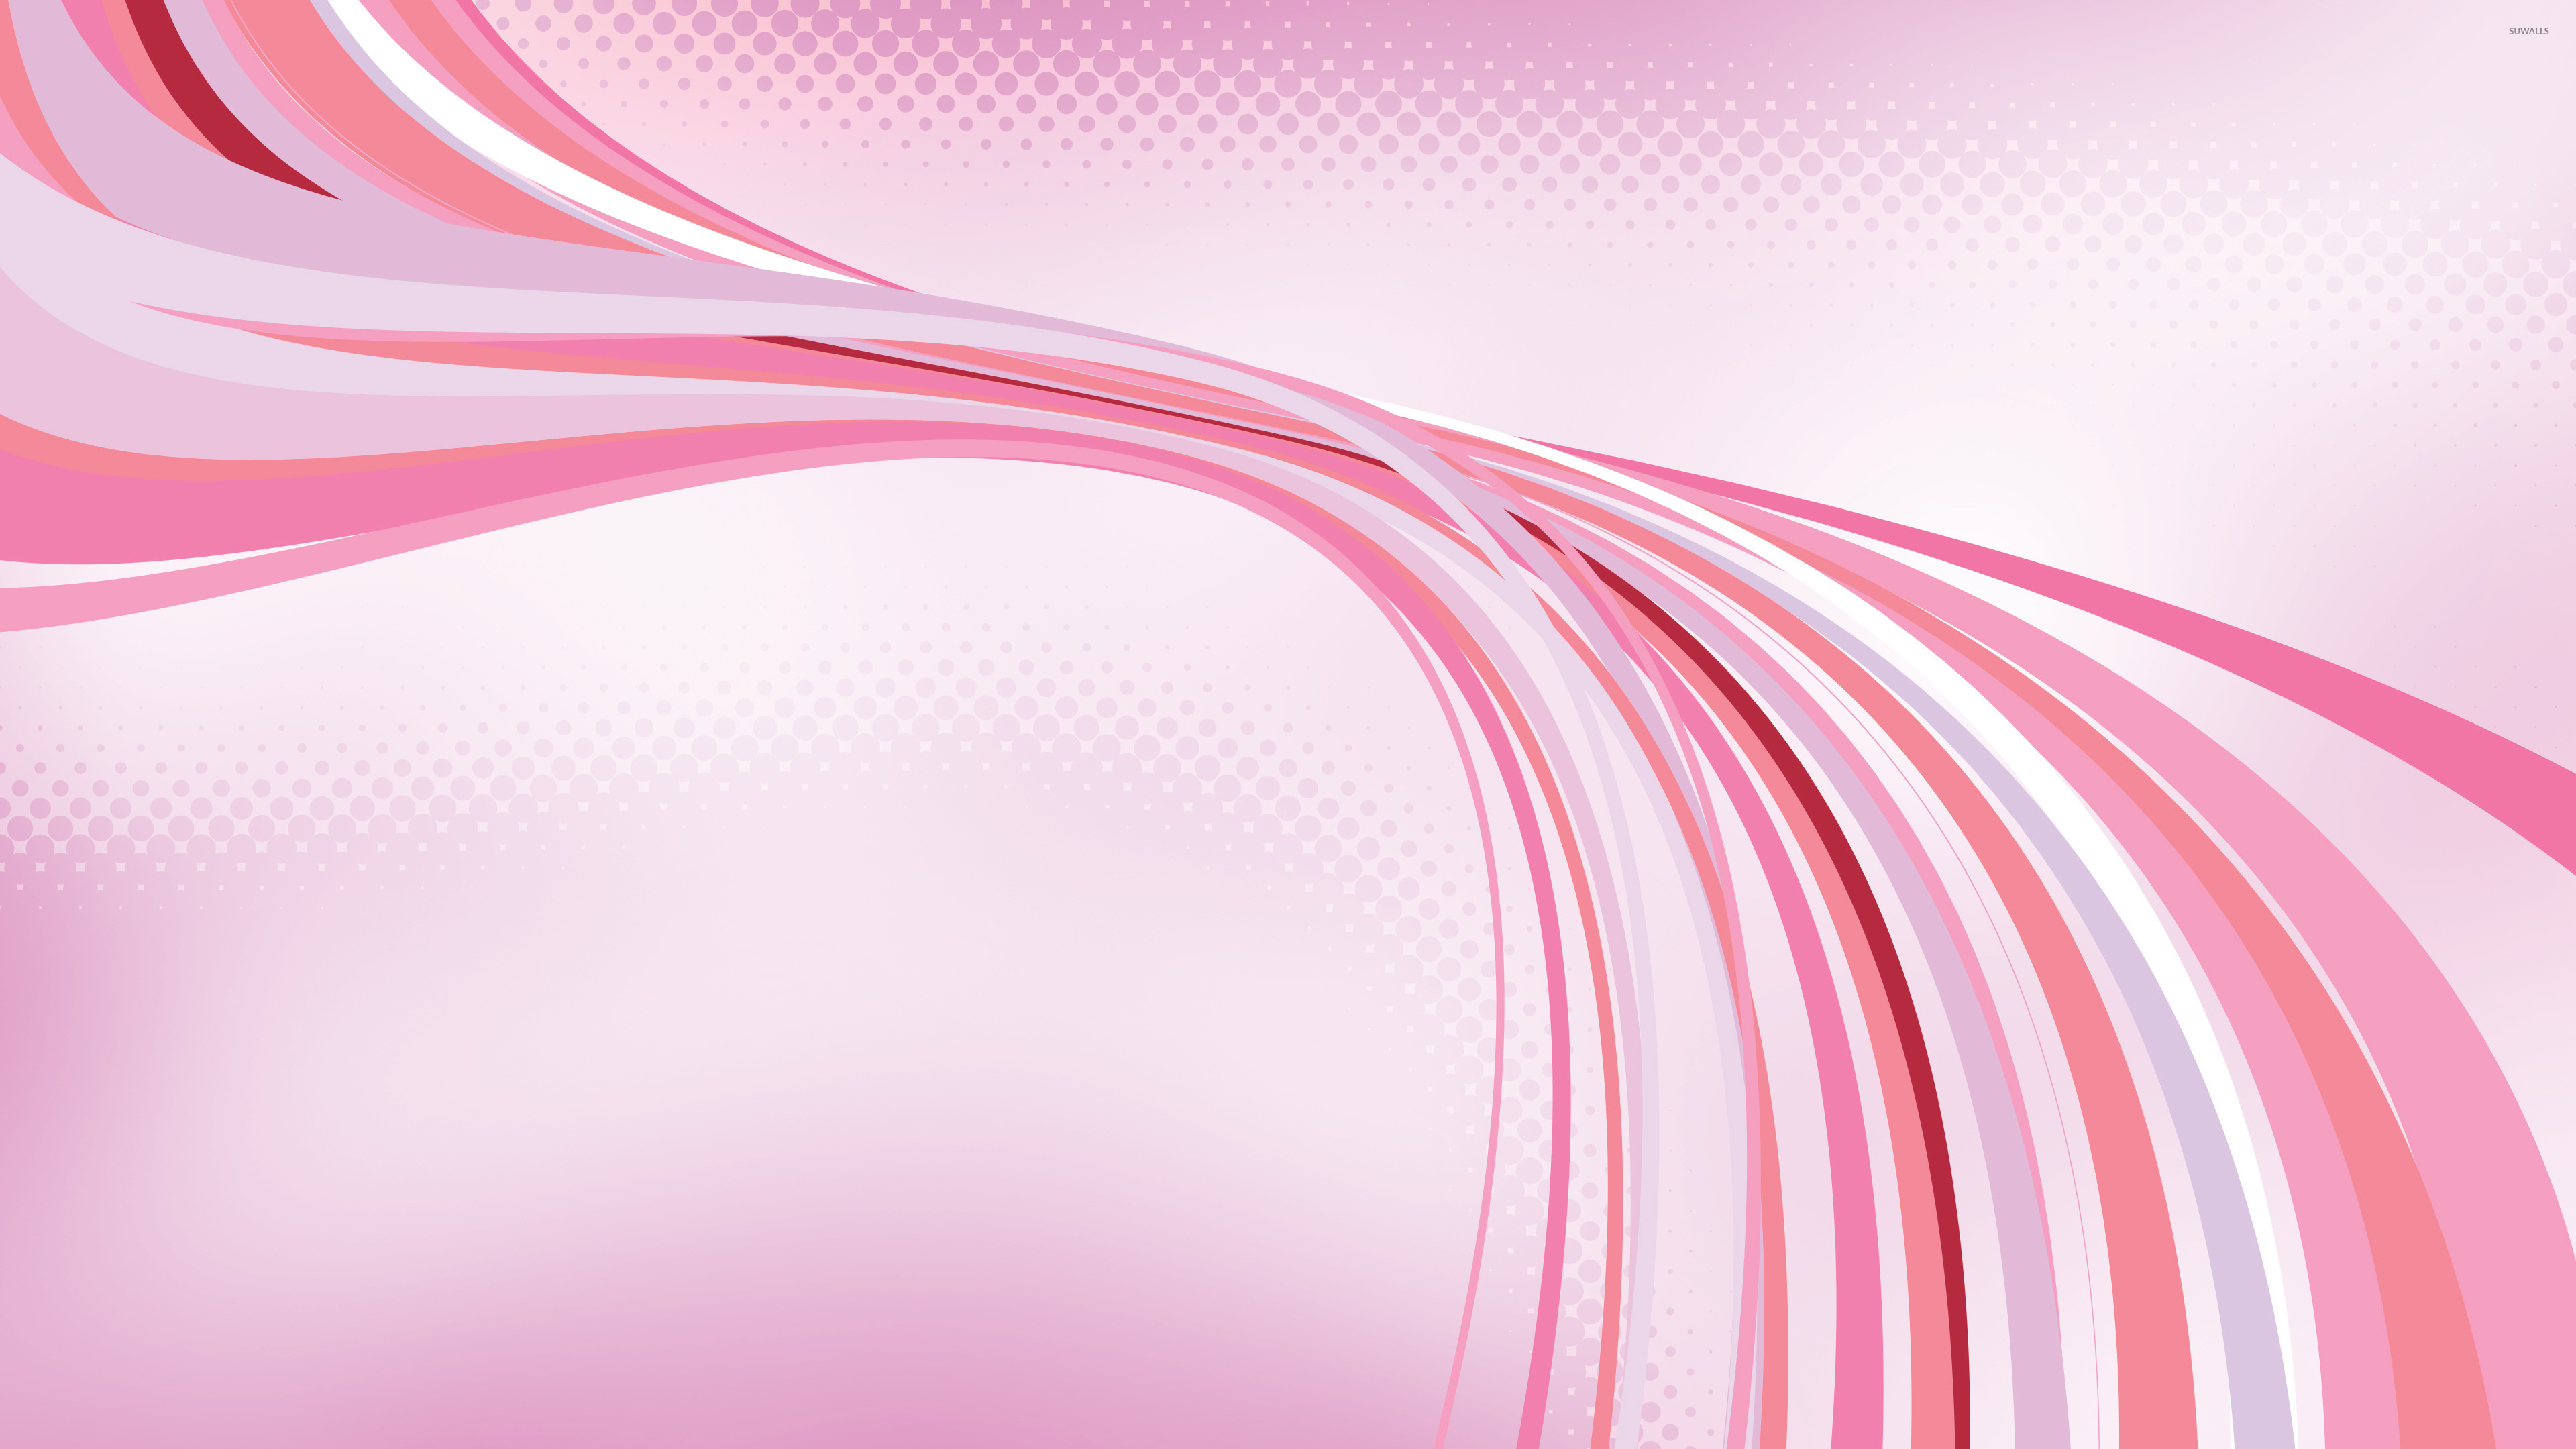 pink lines wallpaper abstract wallpapers 44430